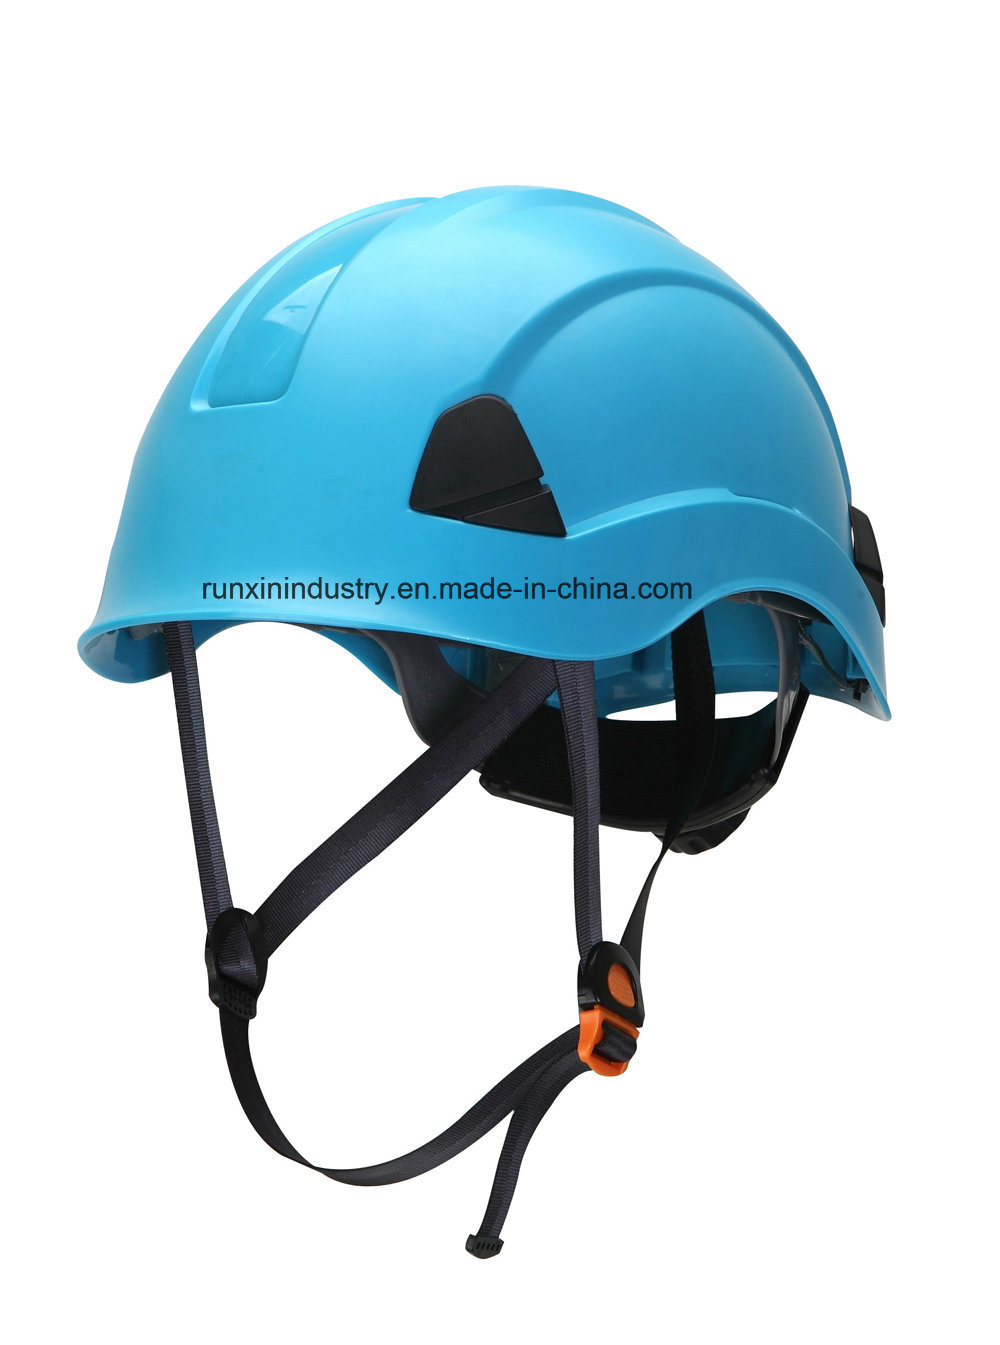 Working Aloft Safety Helmet ANSI Z89.1